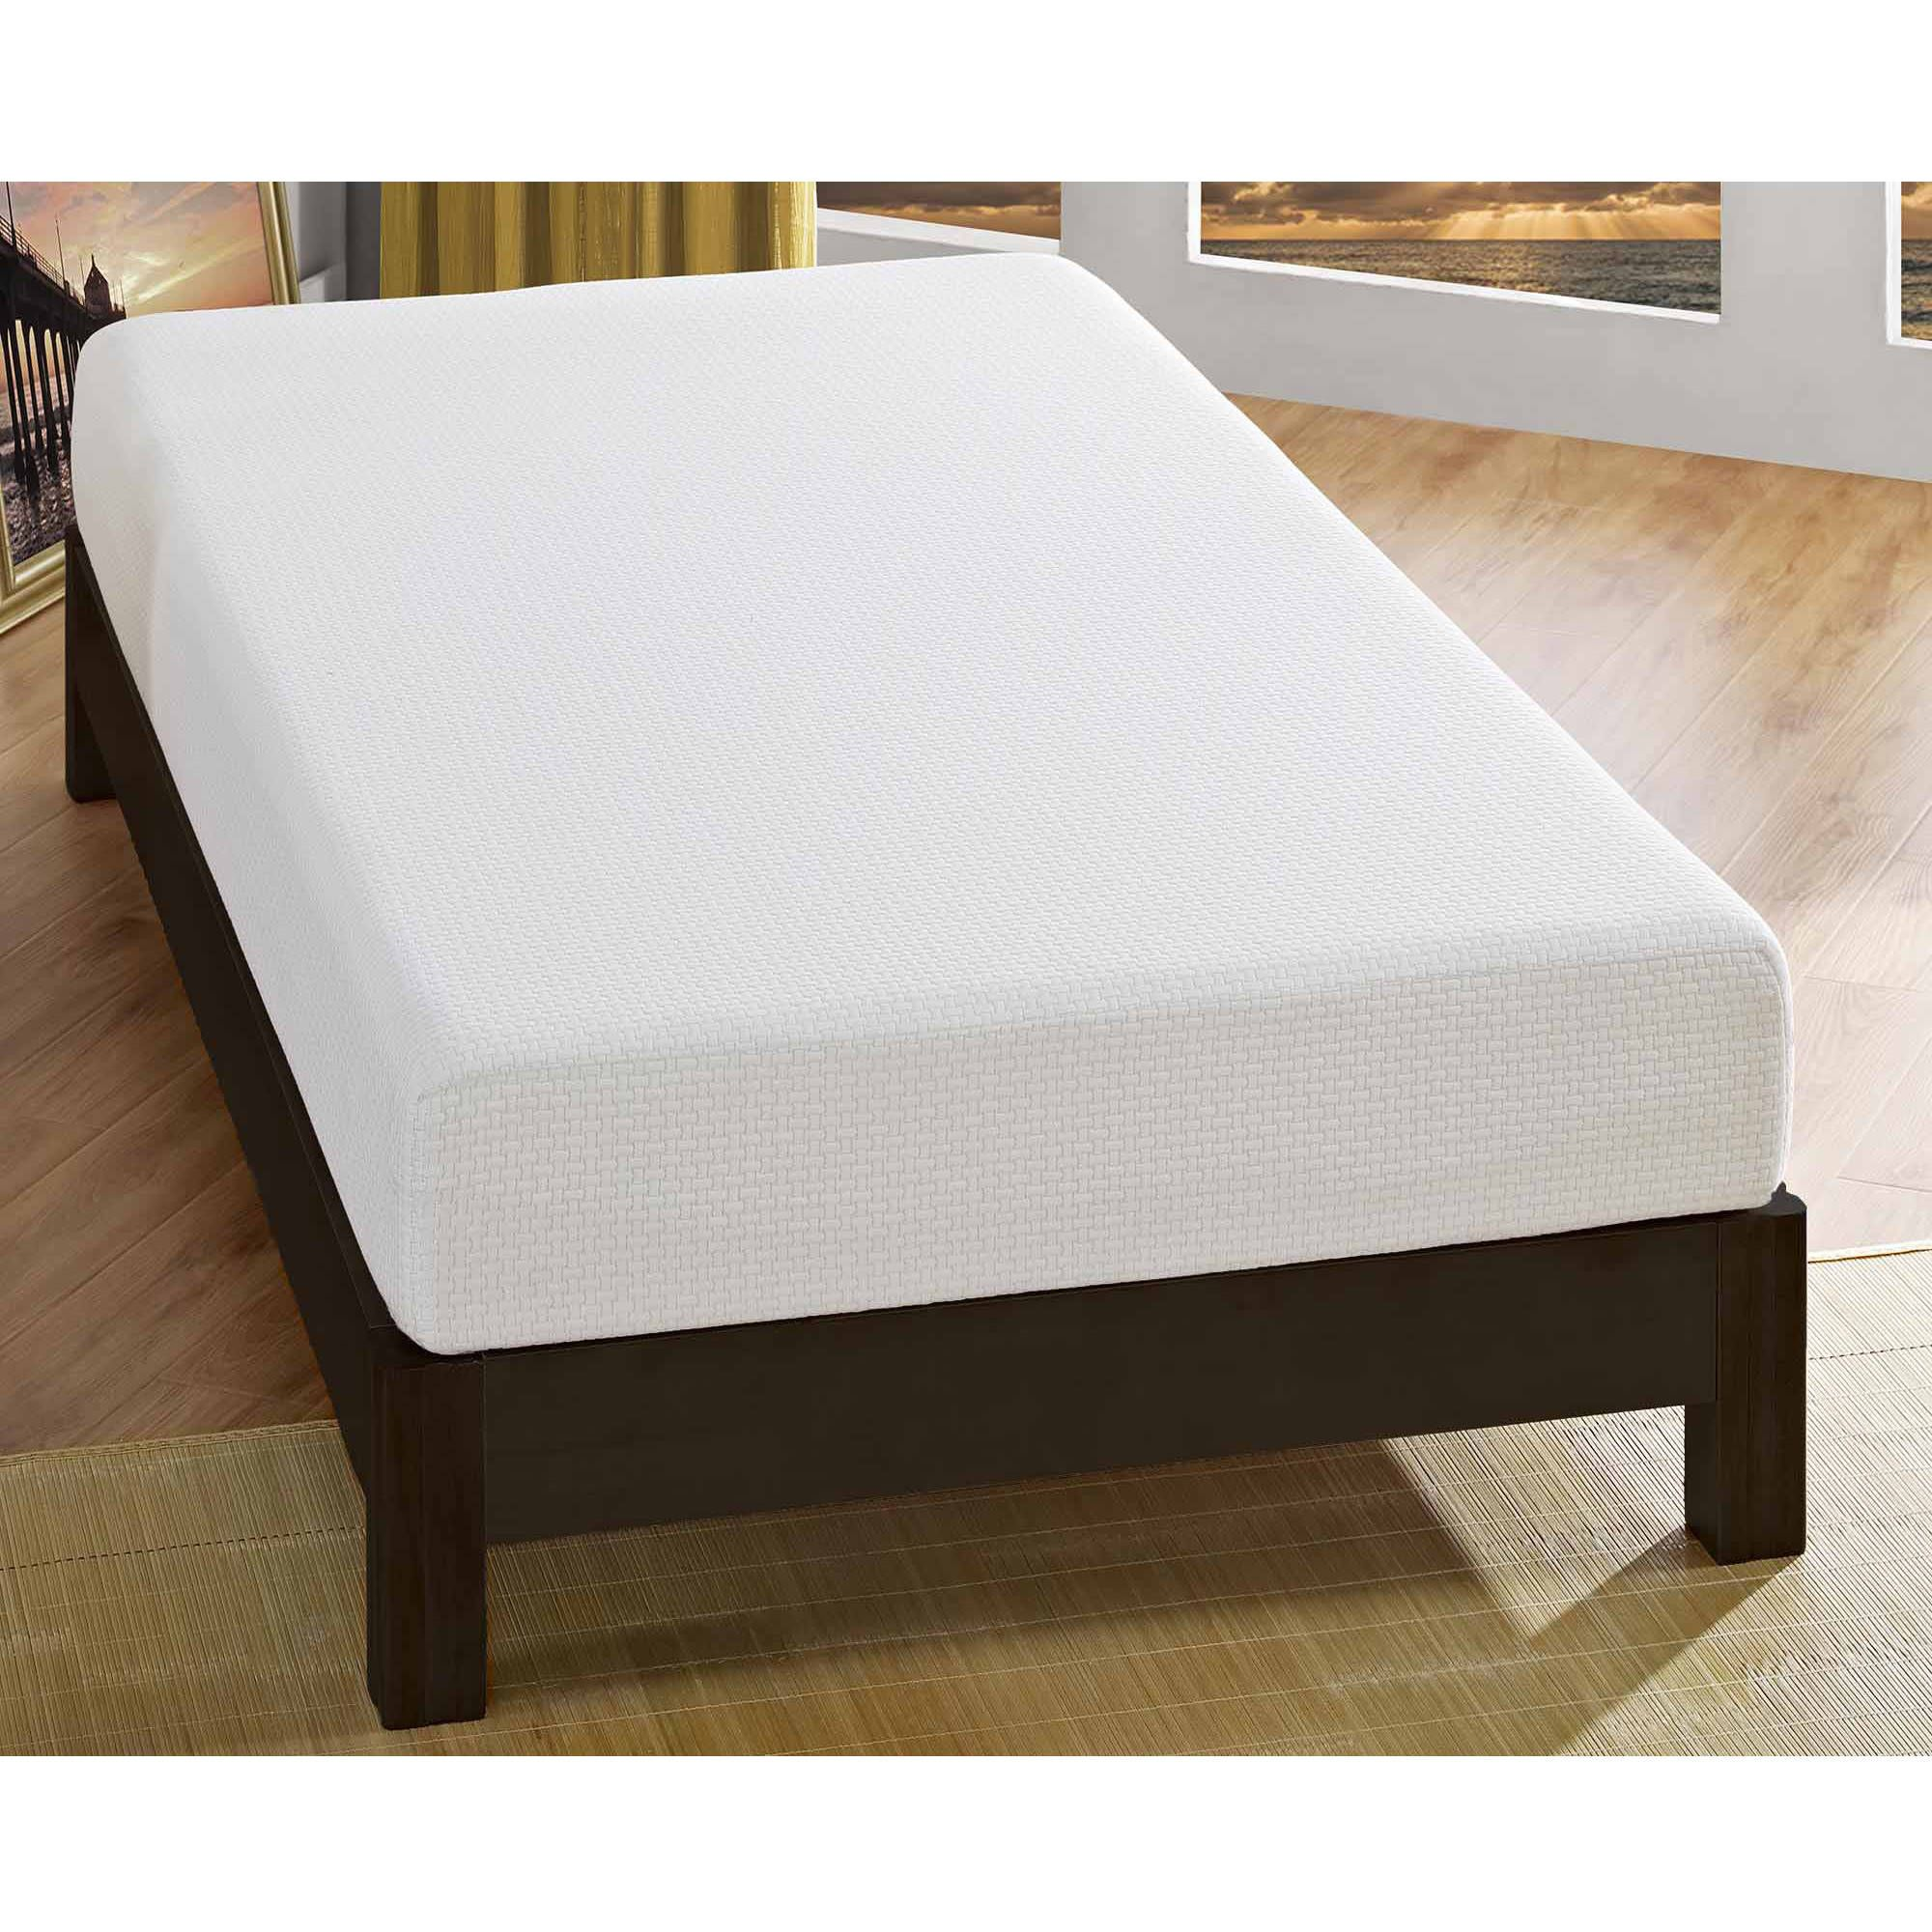 experience sleep on a mattress unlike all others the signature